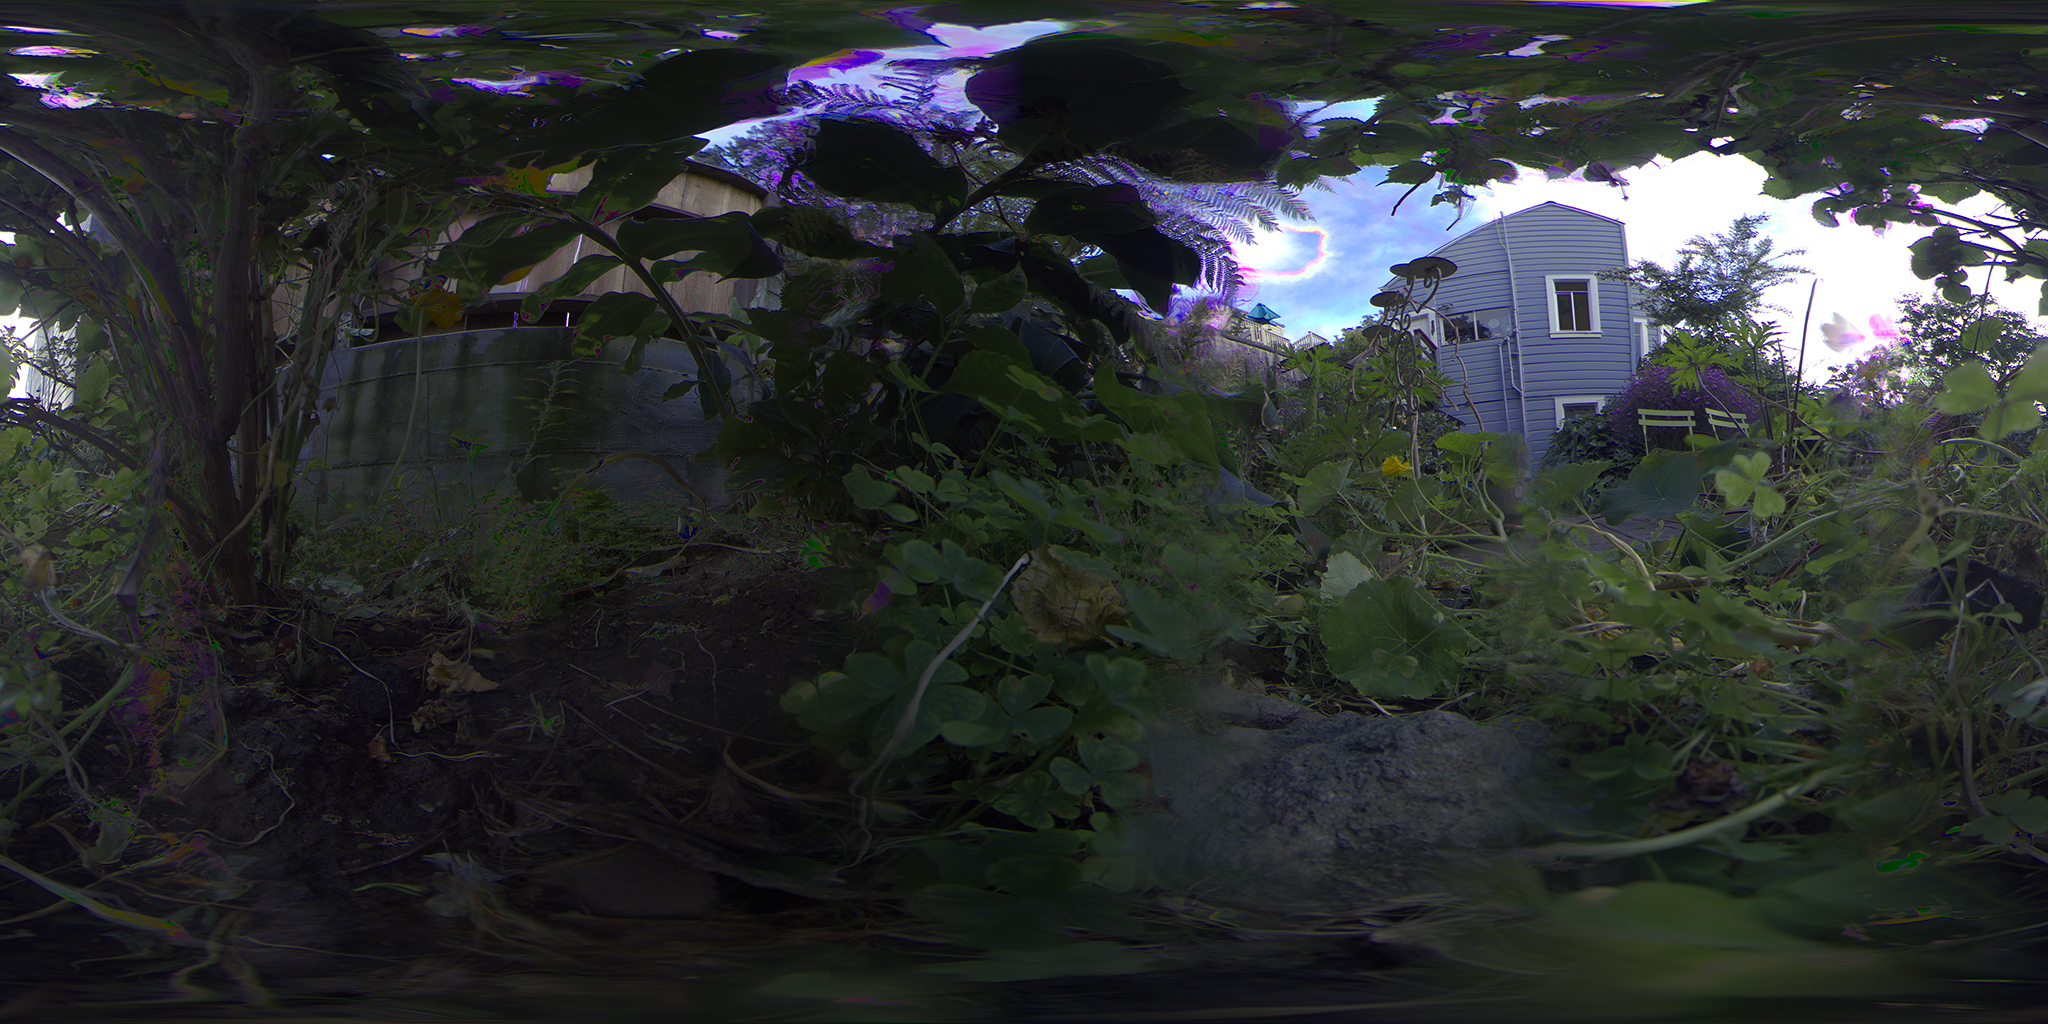 360_bushes_saturated.jpg